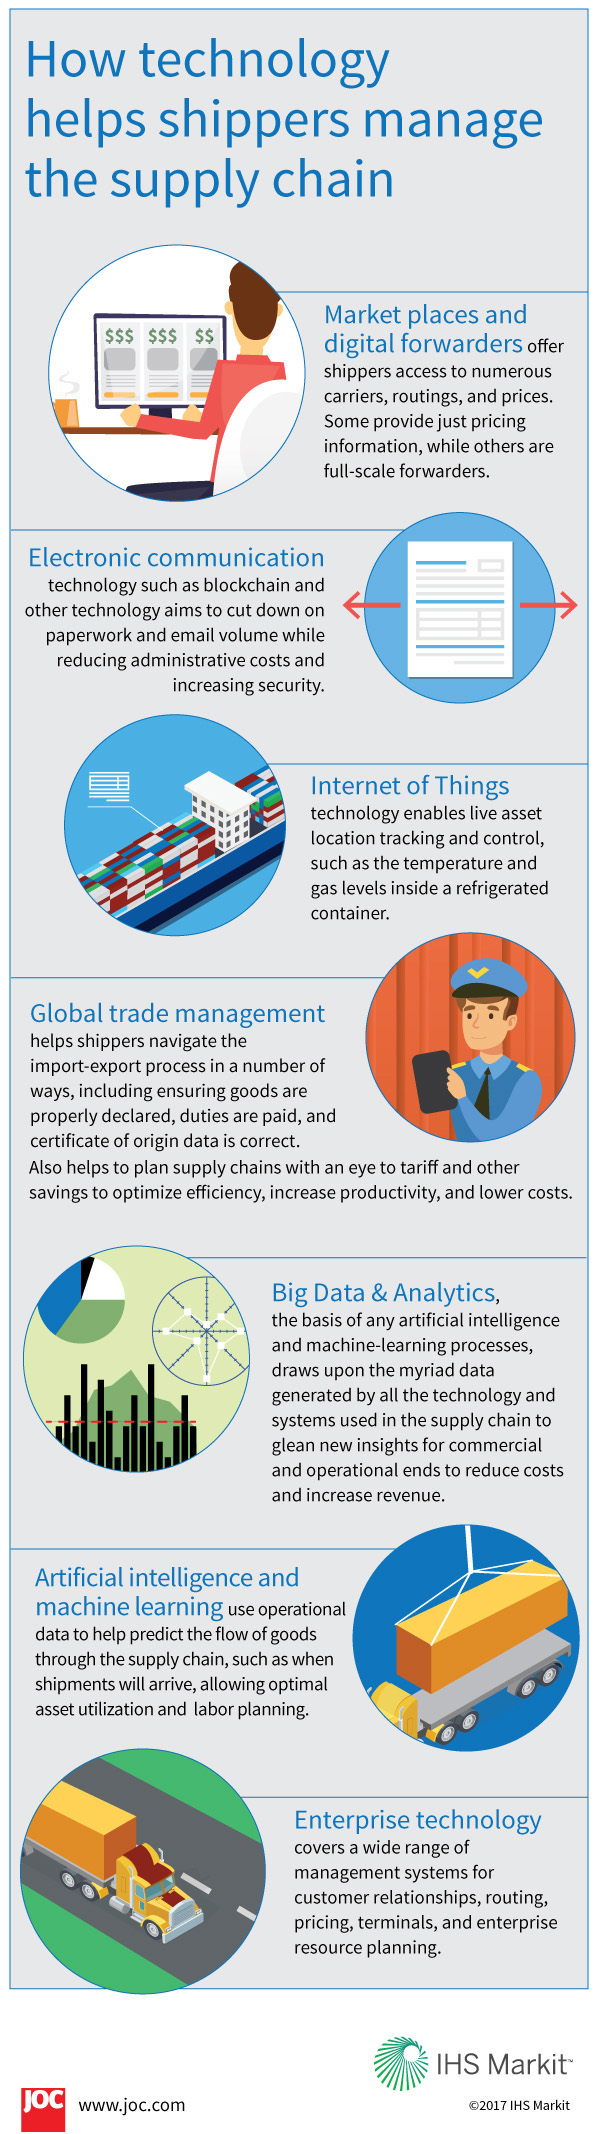 Find How Technology is Used to Help Shippers Manage Supply Chains